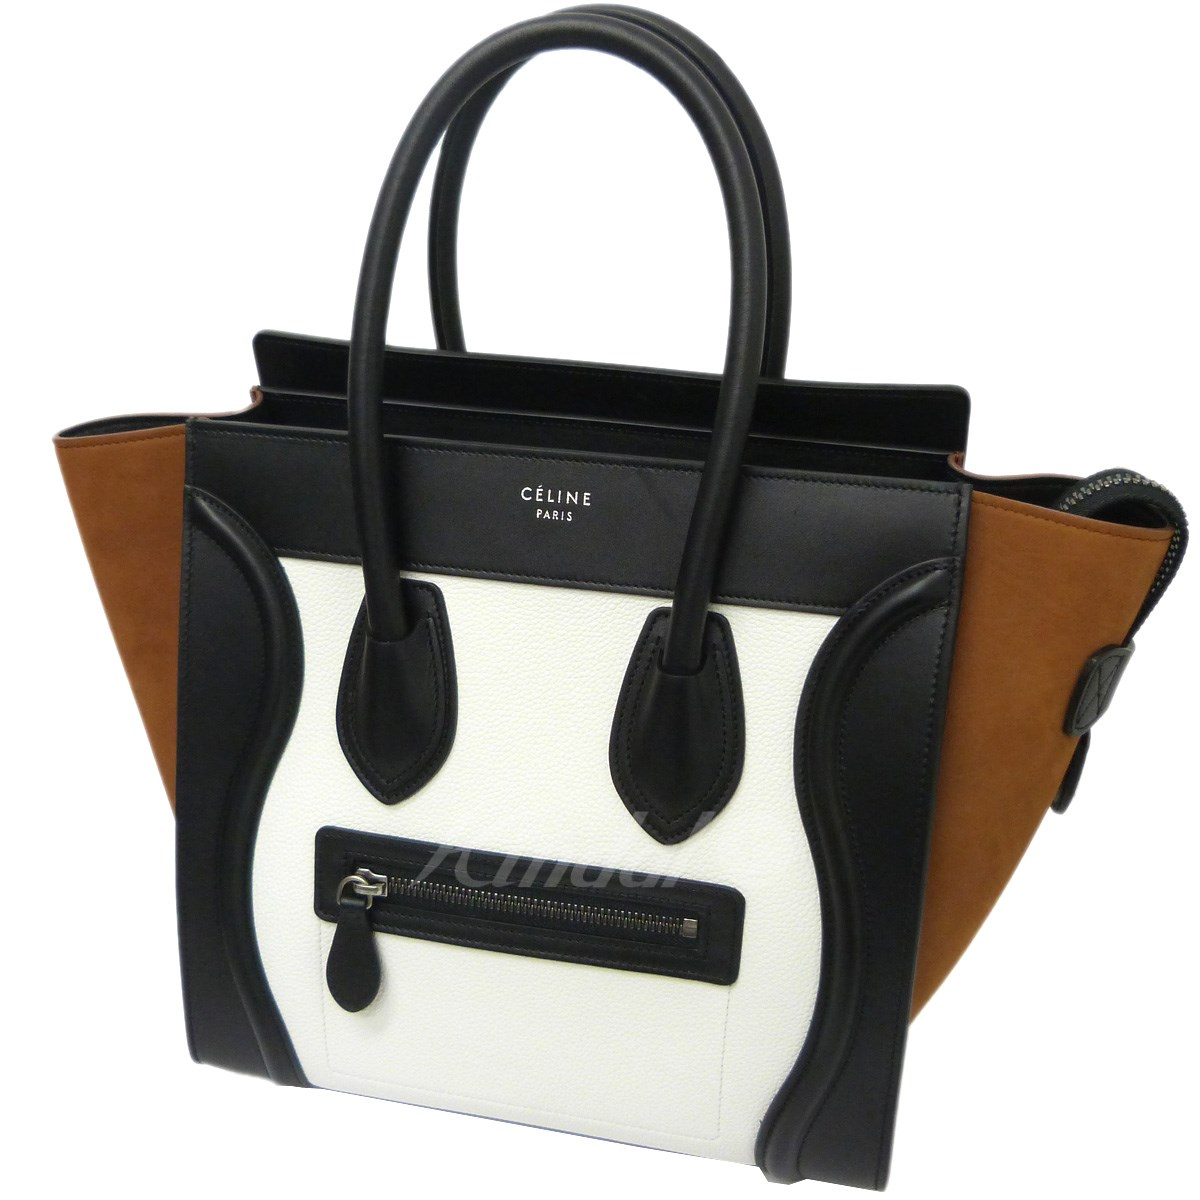 bbd0abfc8232 CELINE 18SS Carrara gauge micro bag white X black X brown size  - (Celine)